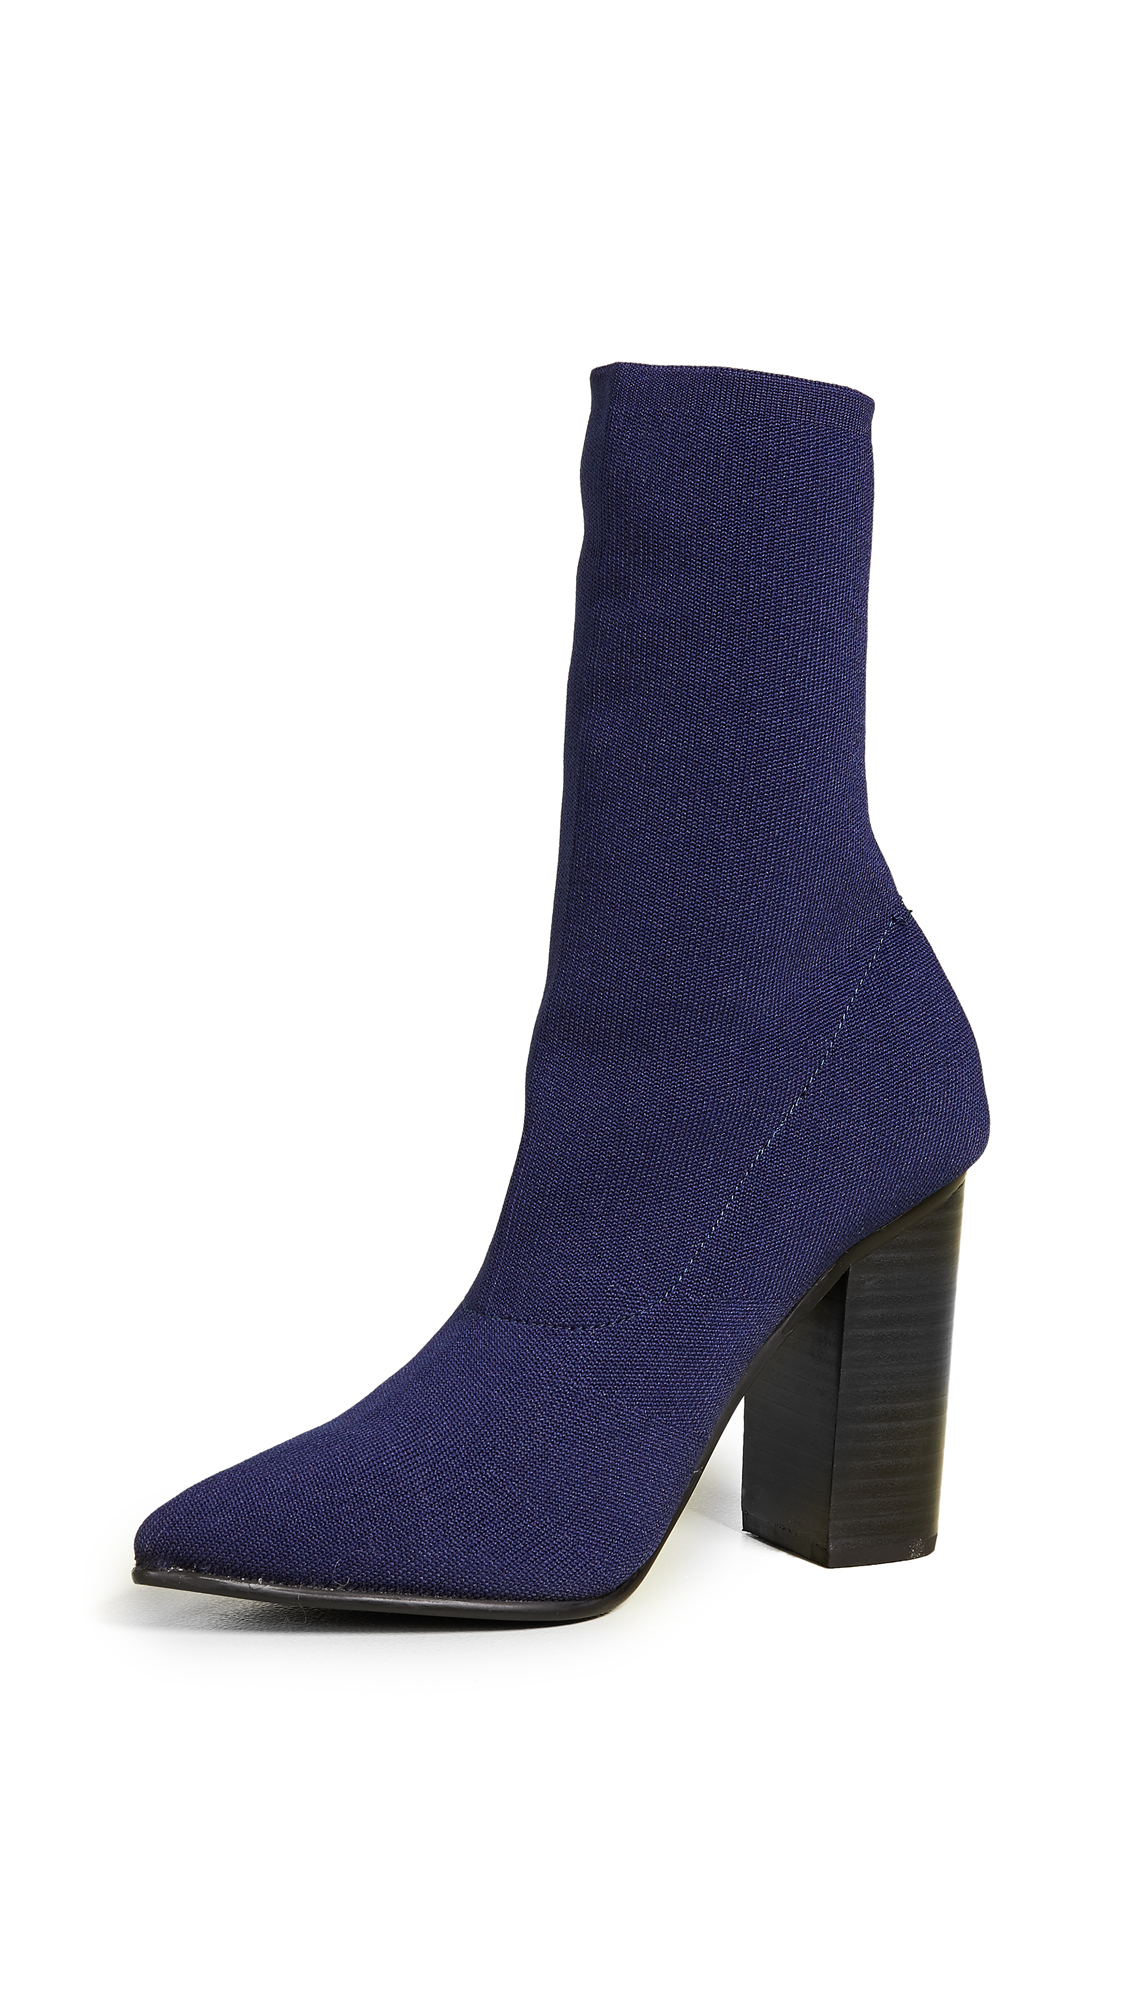 Sol Sana Dannii Stretch Booties - Navy